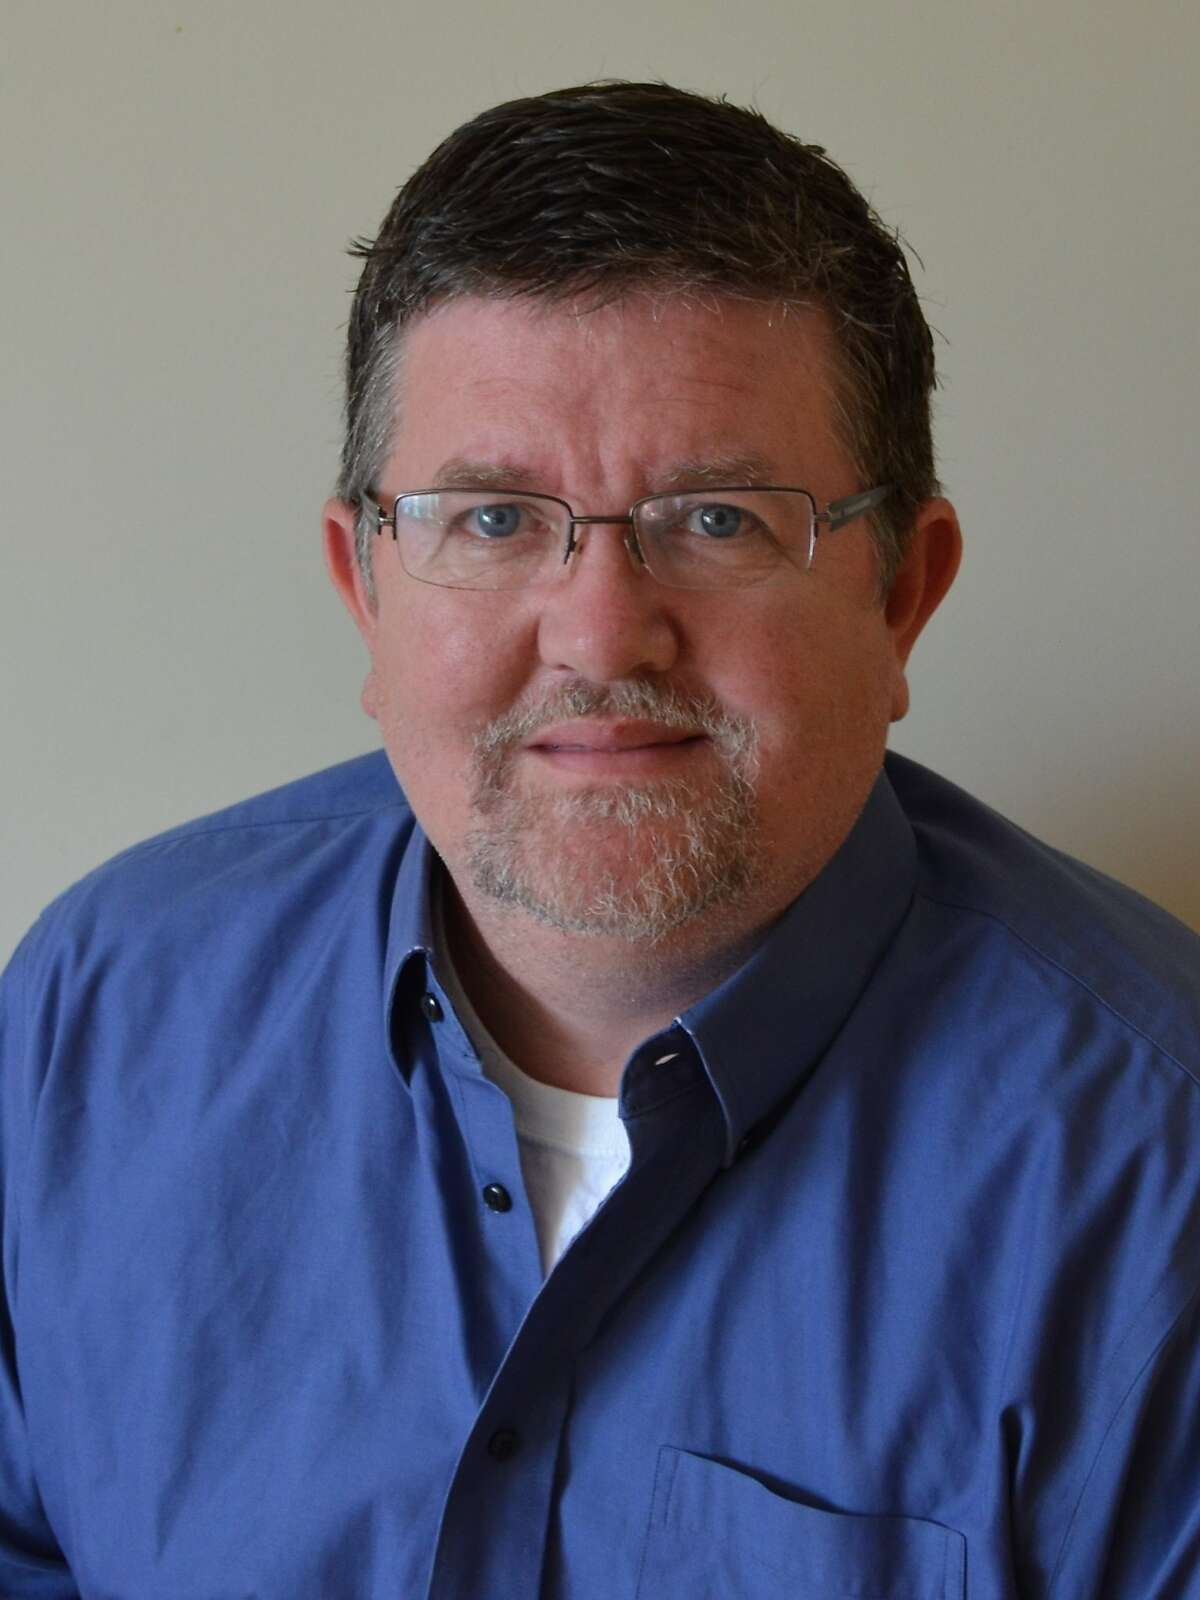 SDM Software named Kevin Sullivan vice president of product management and business development.